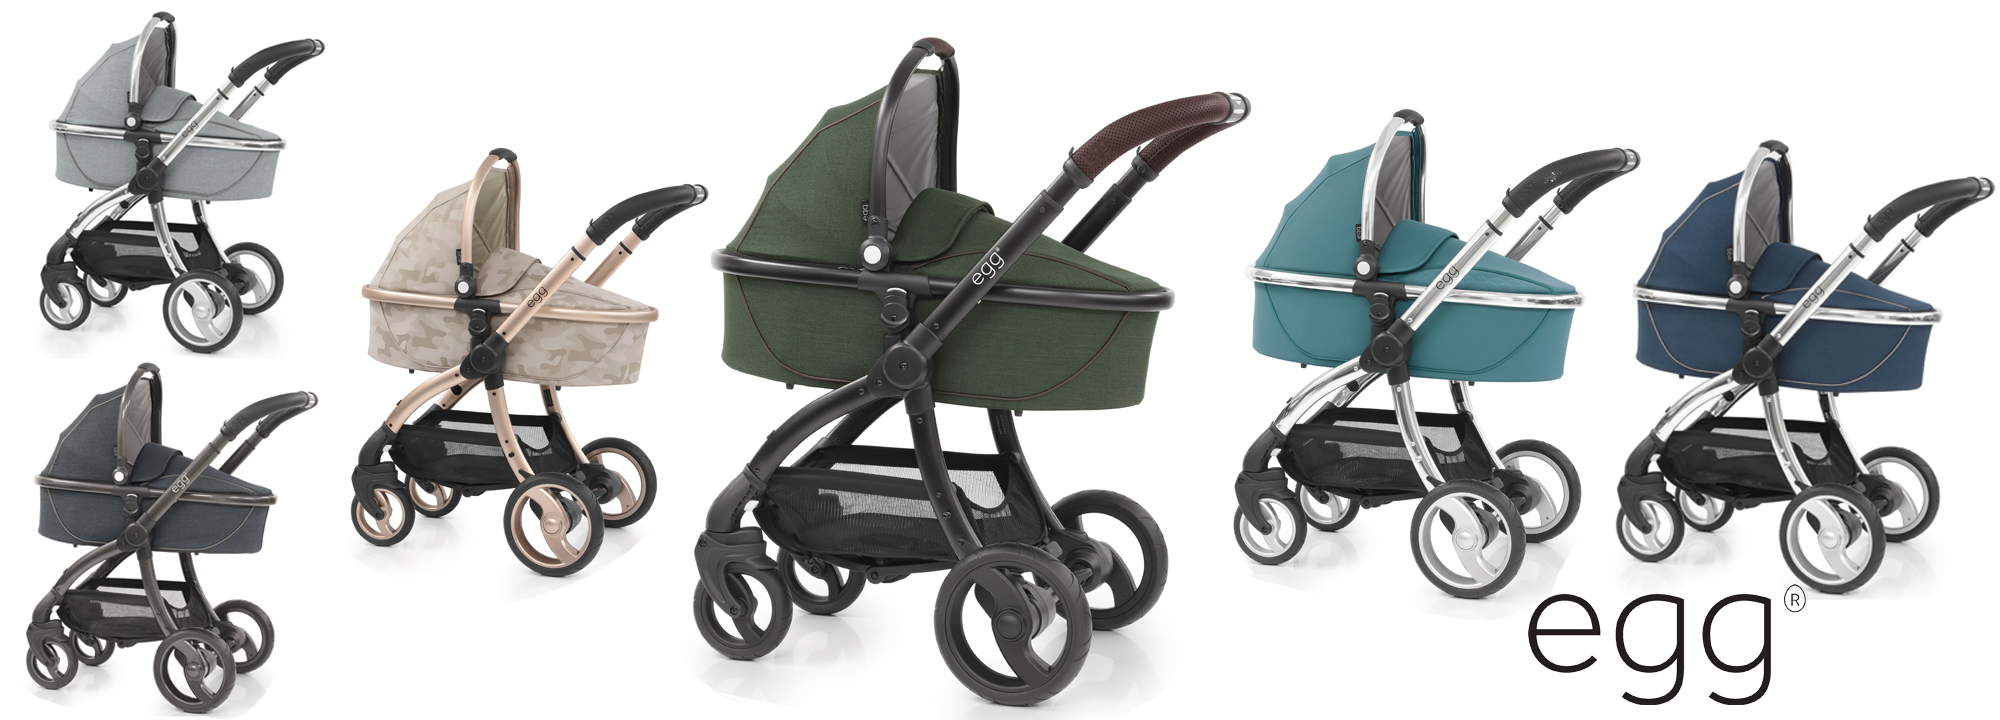 Egg Stroller Cool Mist Egg Brands Paul Stride